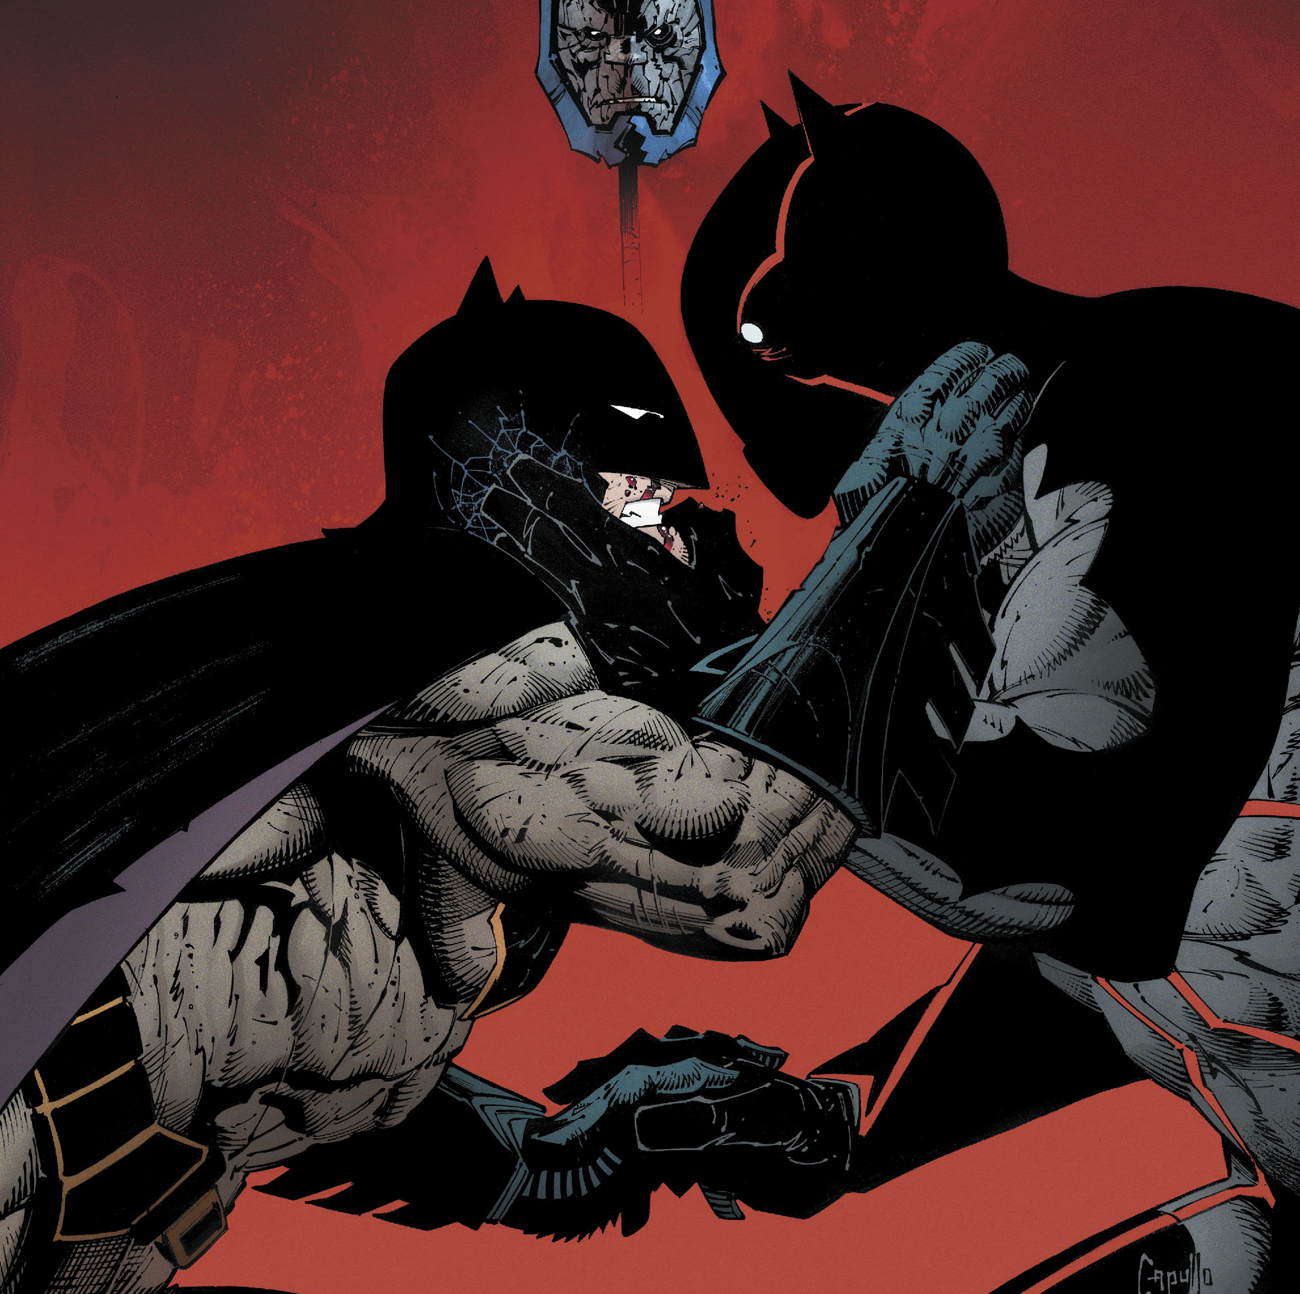 Batman: Last Knight on Earth #3 review: A fitting end that stands alone